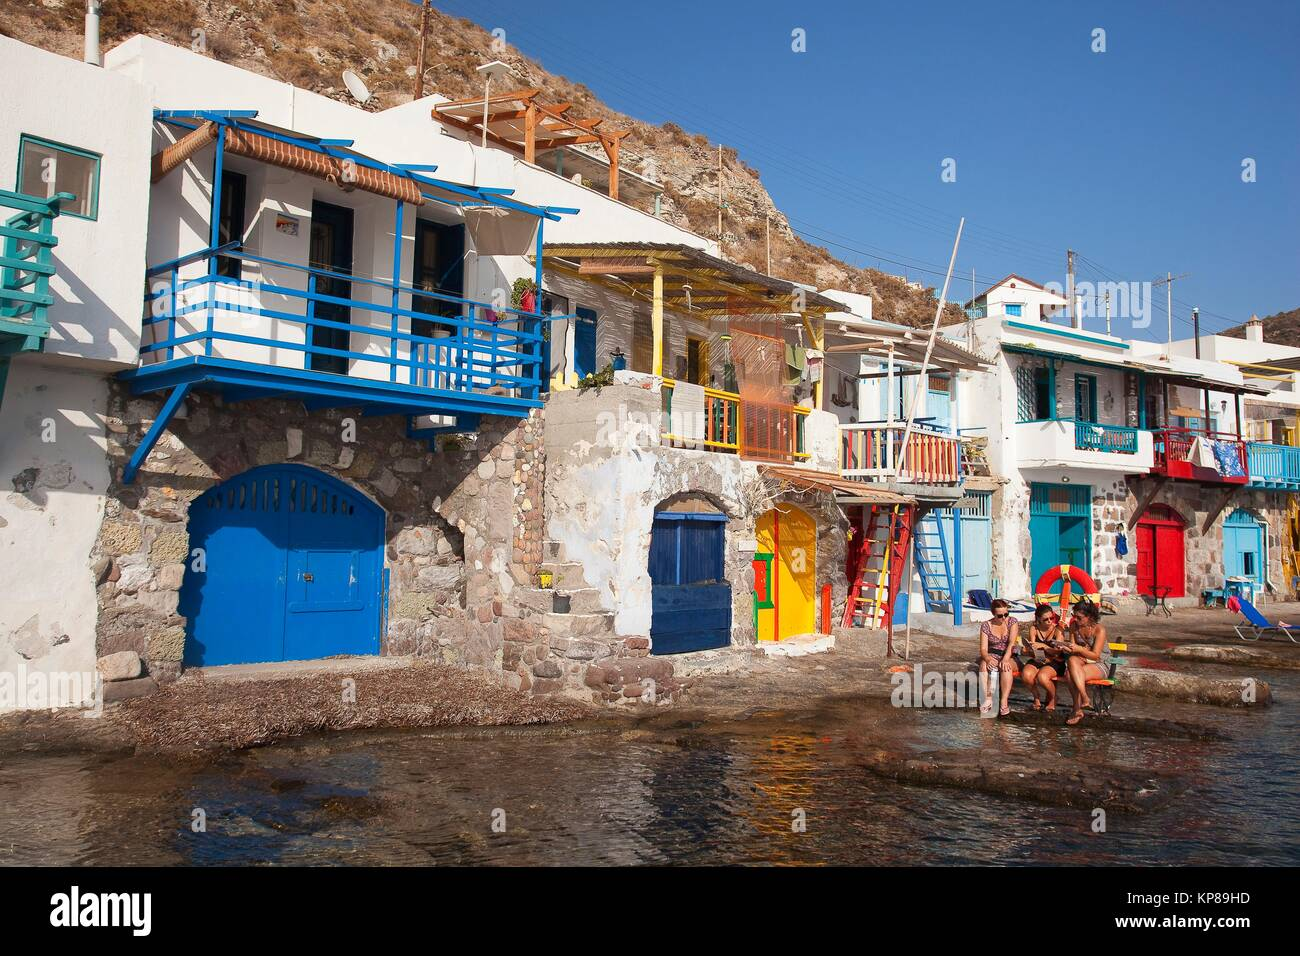 Tourists in front of the fisherman houses with boat shelters in Klima village, Milos, Cyclades Islands, Greek Islands, - Stock Image